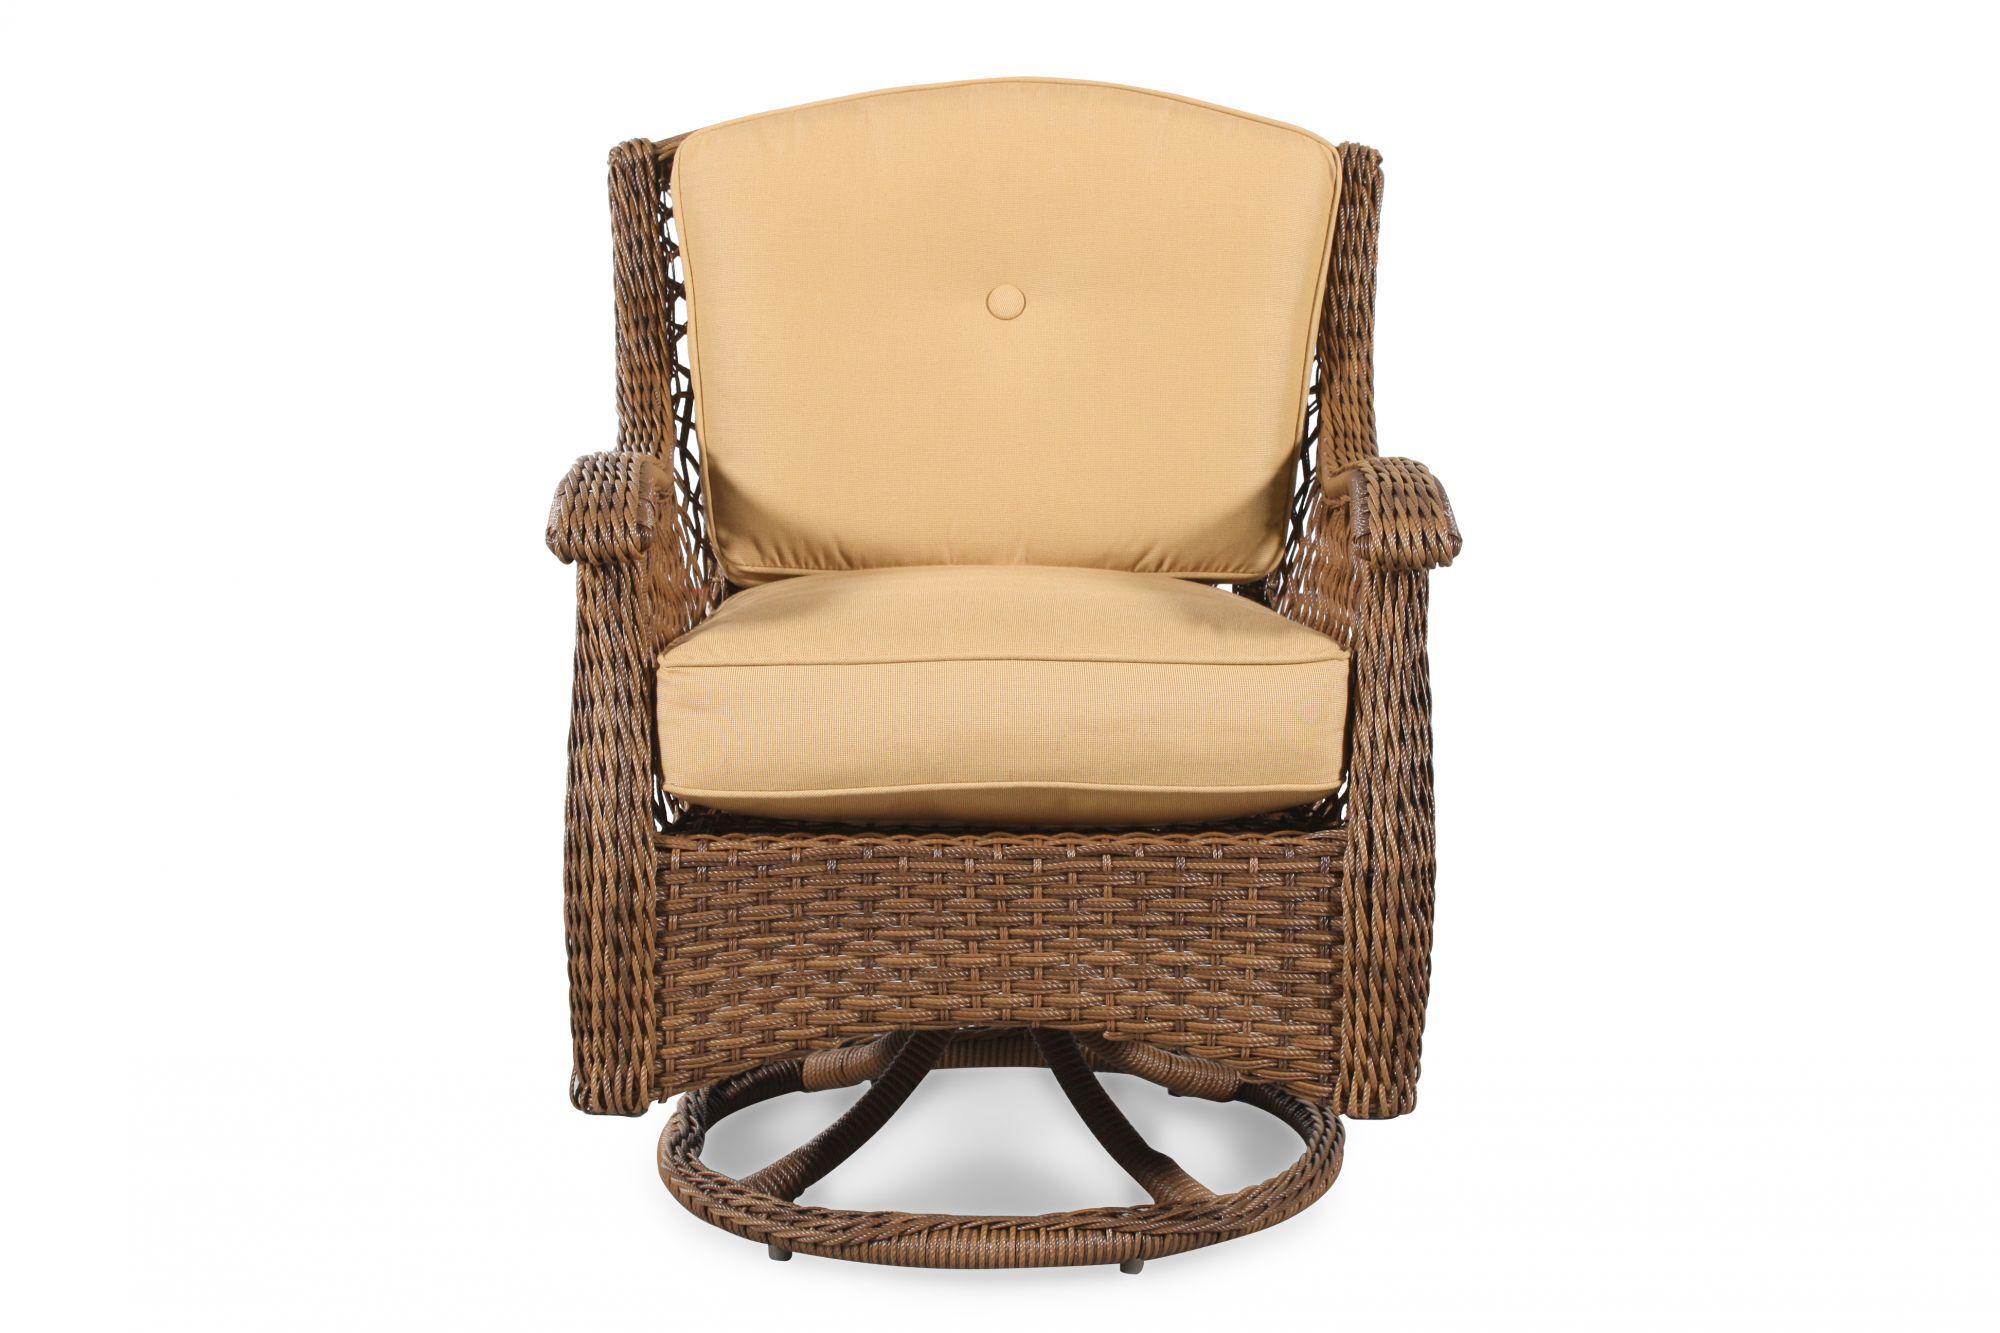 Images Curved Arm Casual Patio Swivel Rocker Chair In Brown Curved Arm  Casual Patio Swivel Rocker Chair In Brown